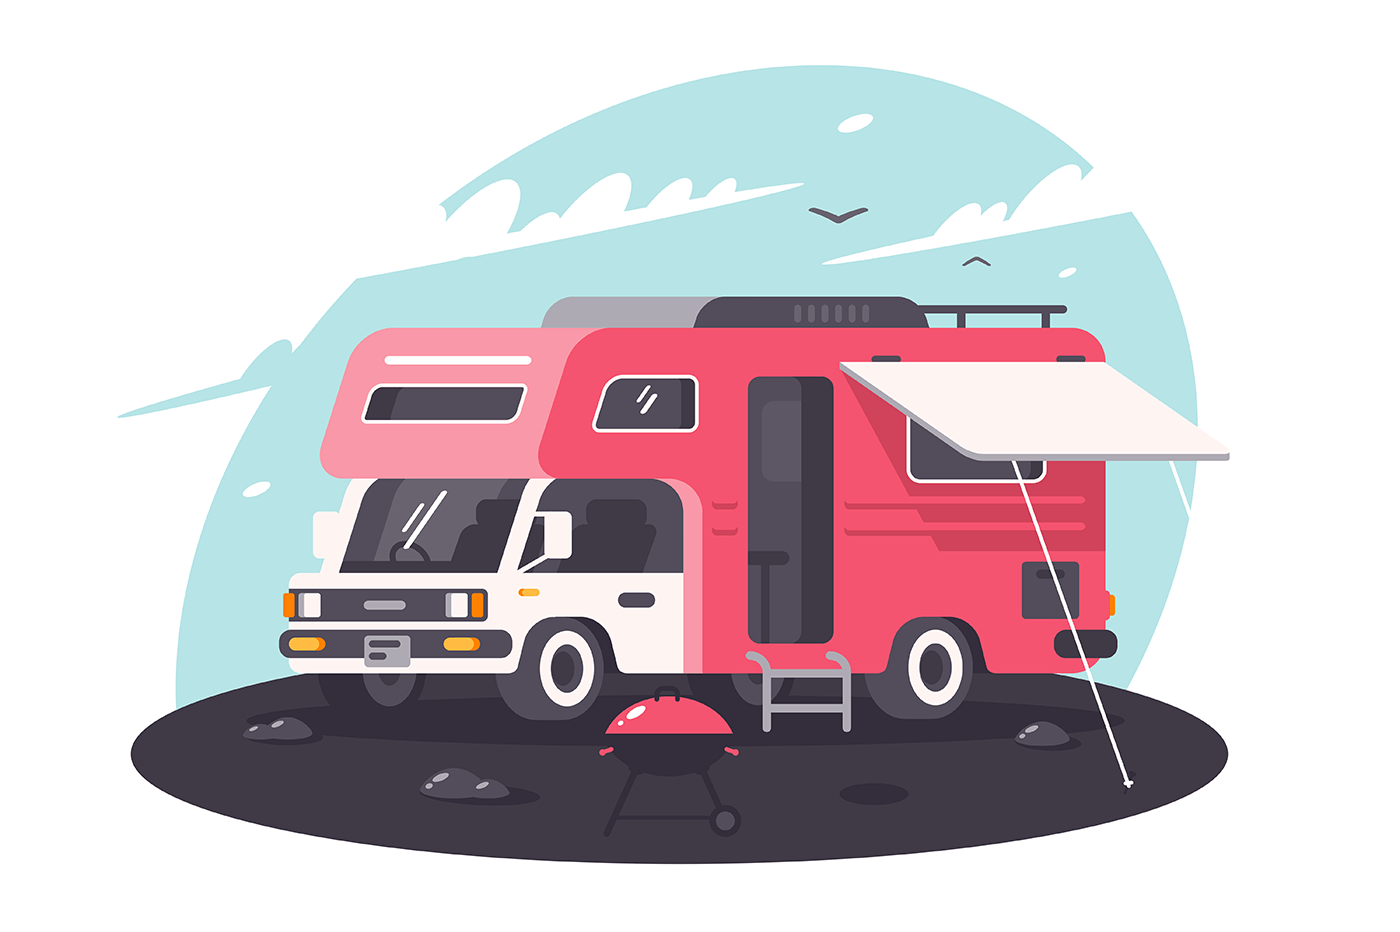 Motor home on rest, parking, fresh air with bbq.